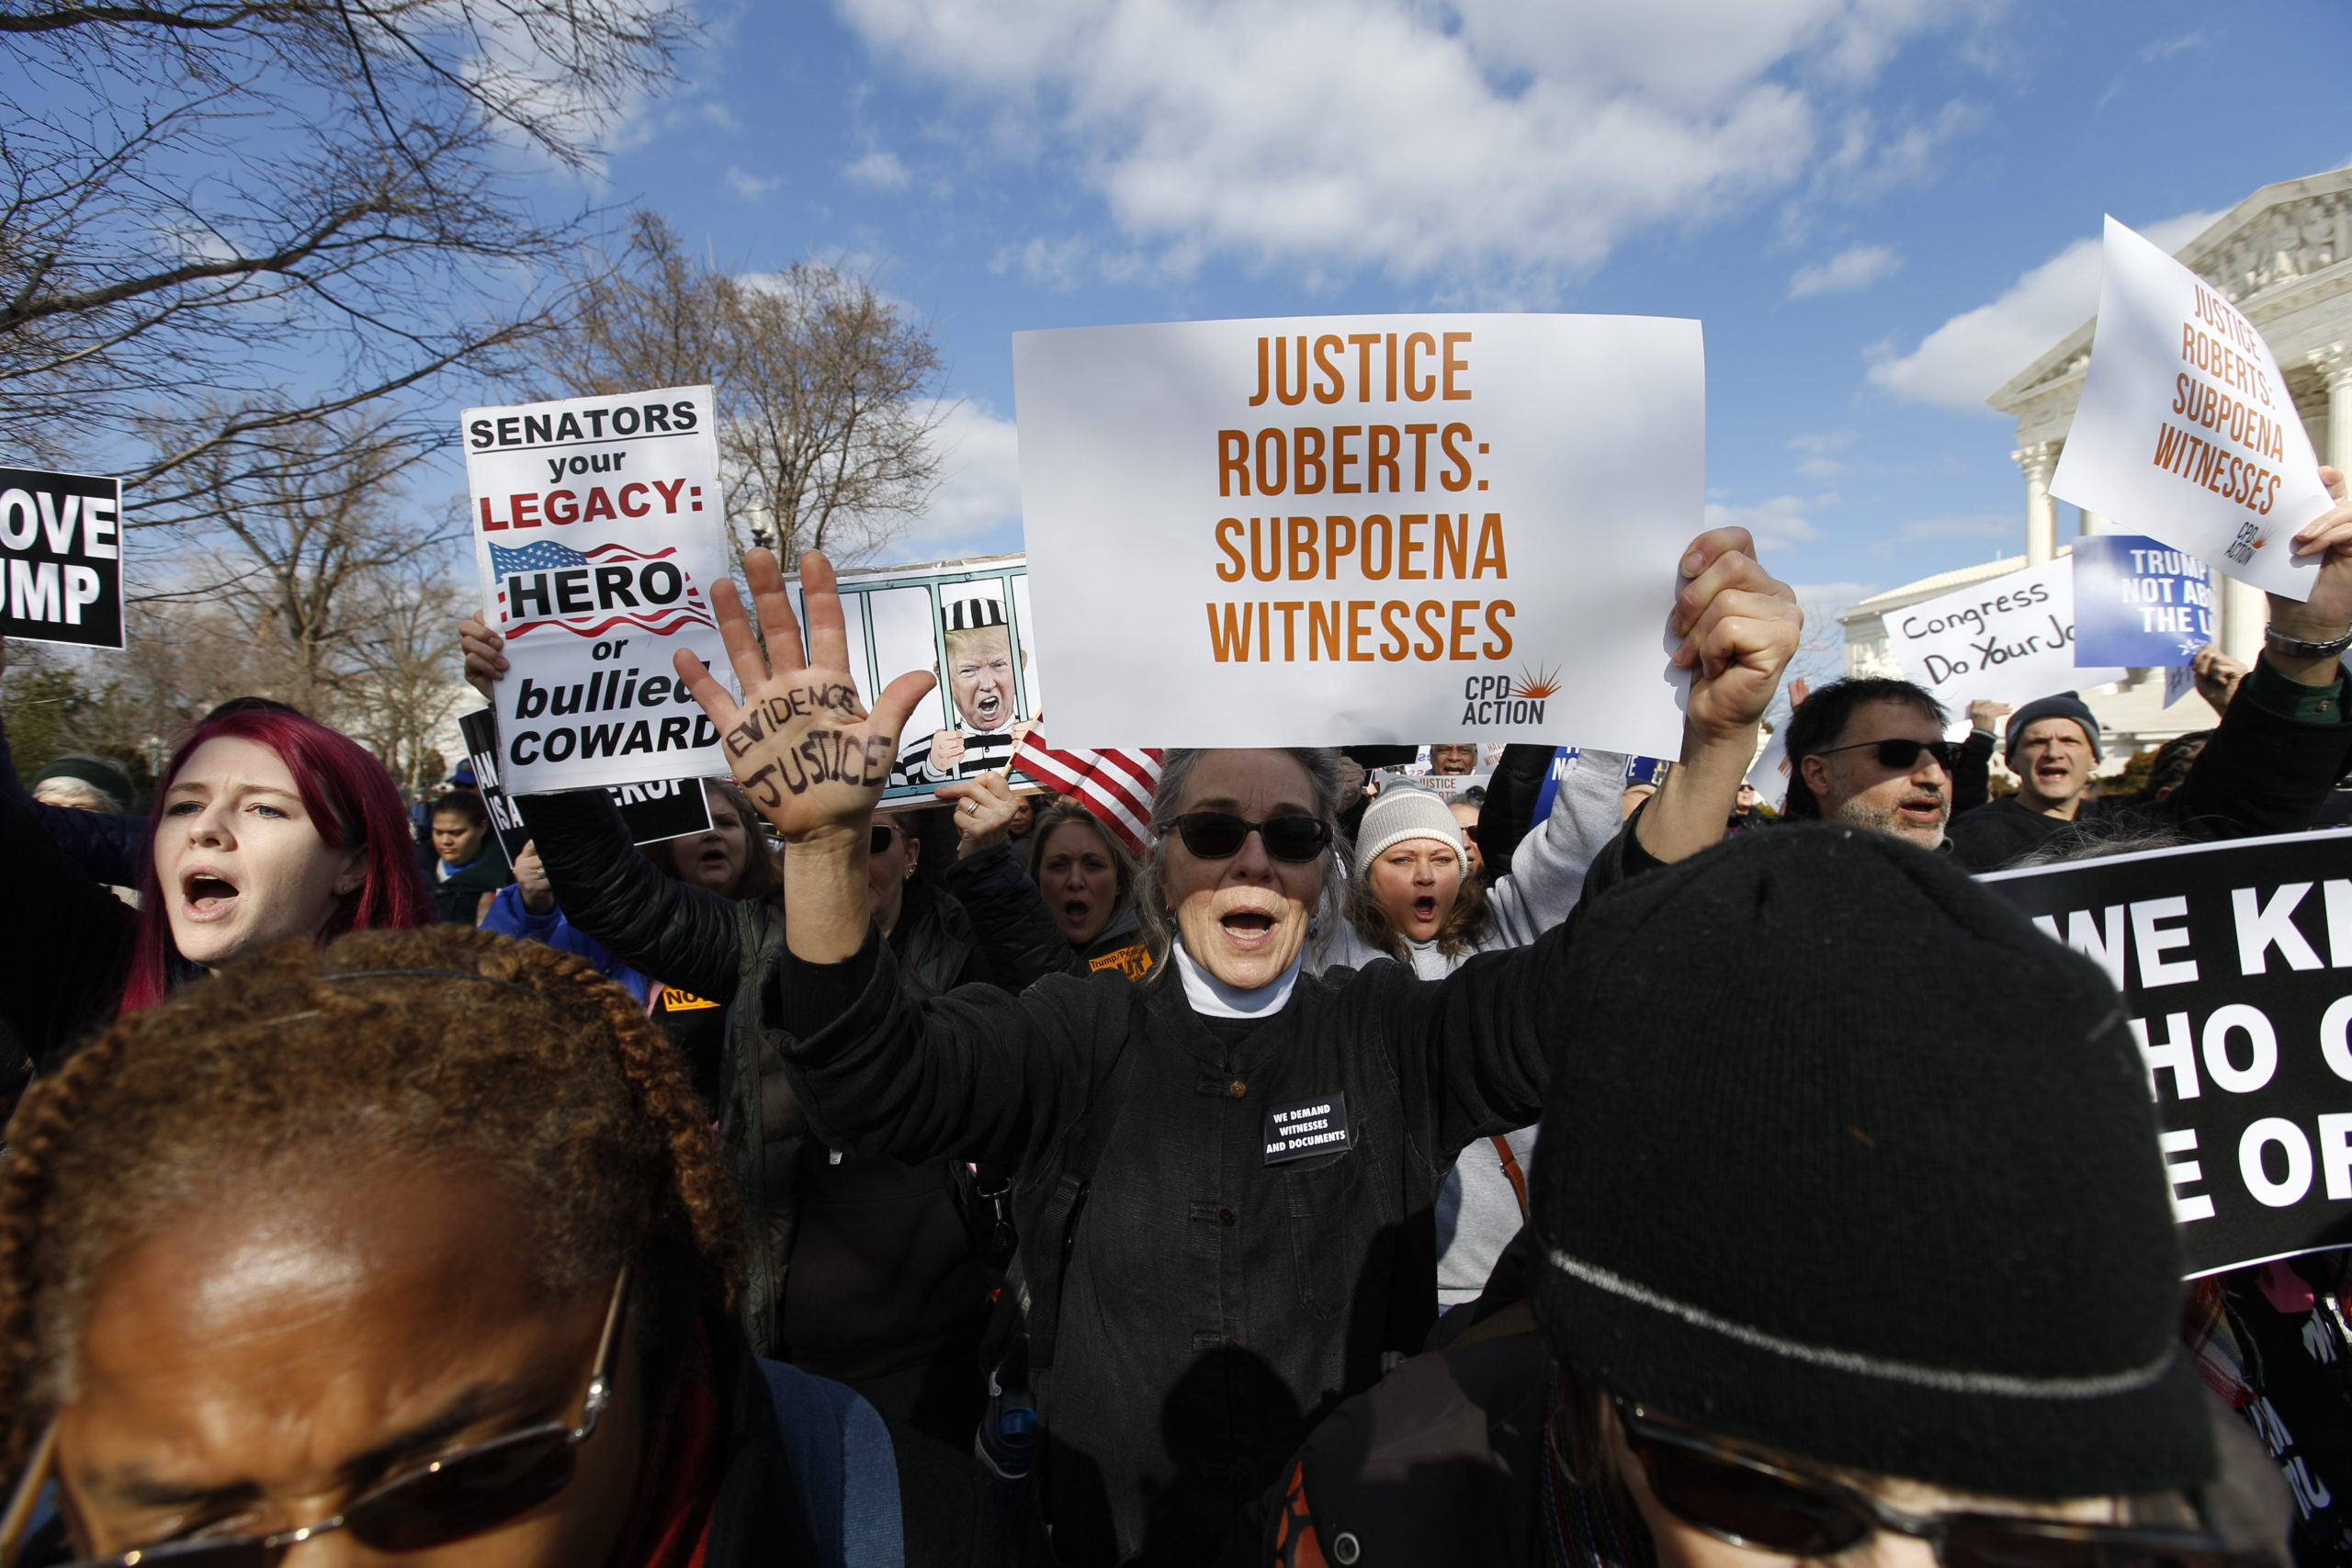 Demonstrators protest outside of the U.S. Supreme Court in Washington, Wednesday, Jan. 29, 2020, during the impeachment trial of President Donald Trump on charges of abuse of power and obstruction of Congress.